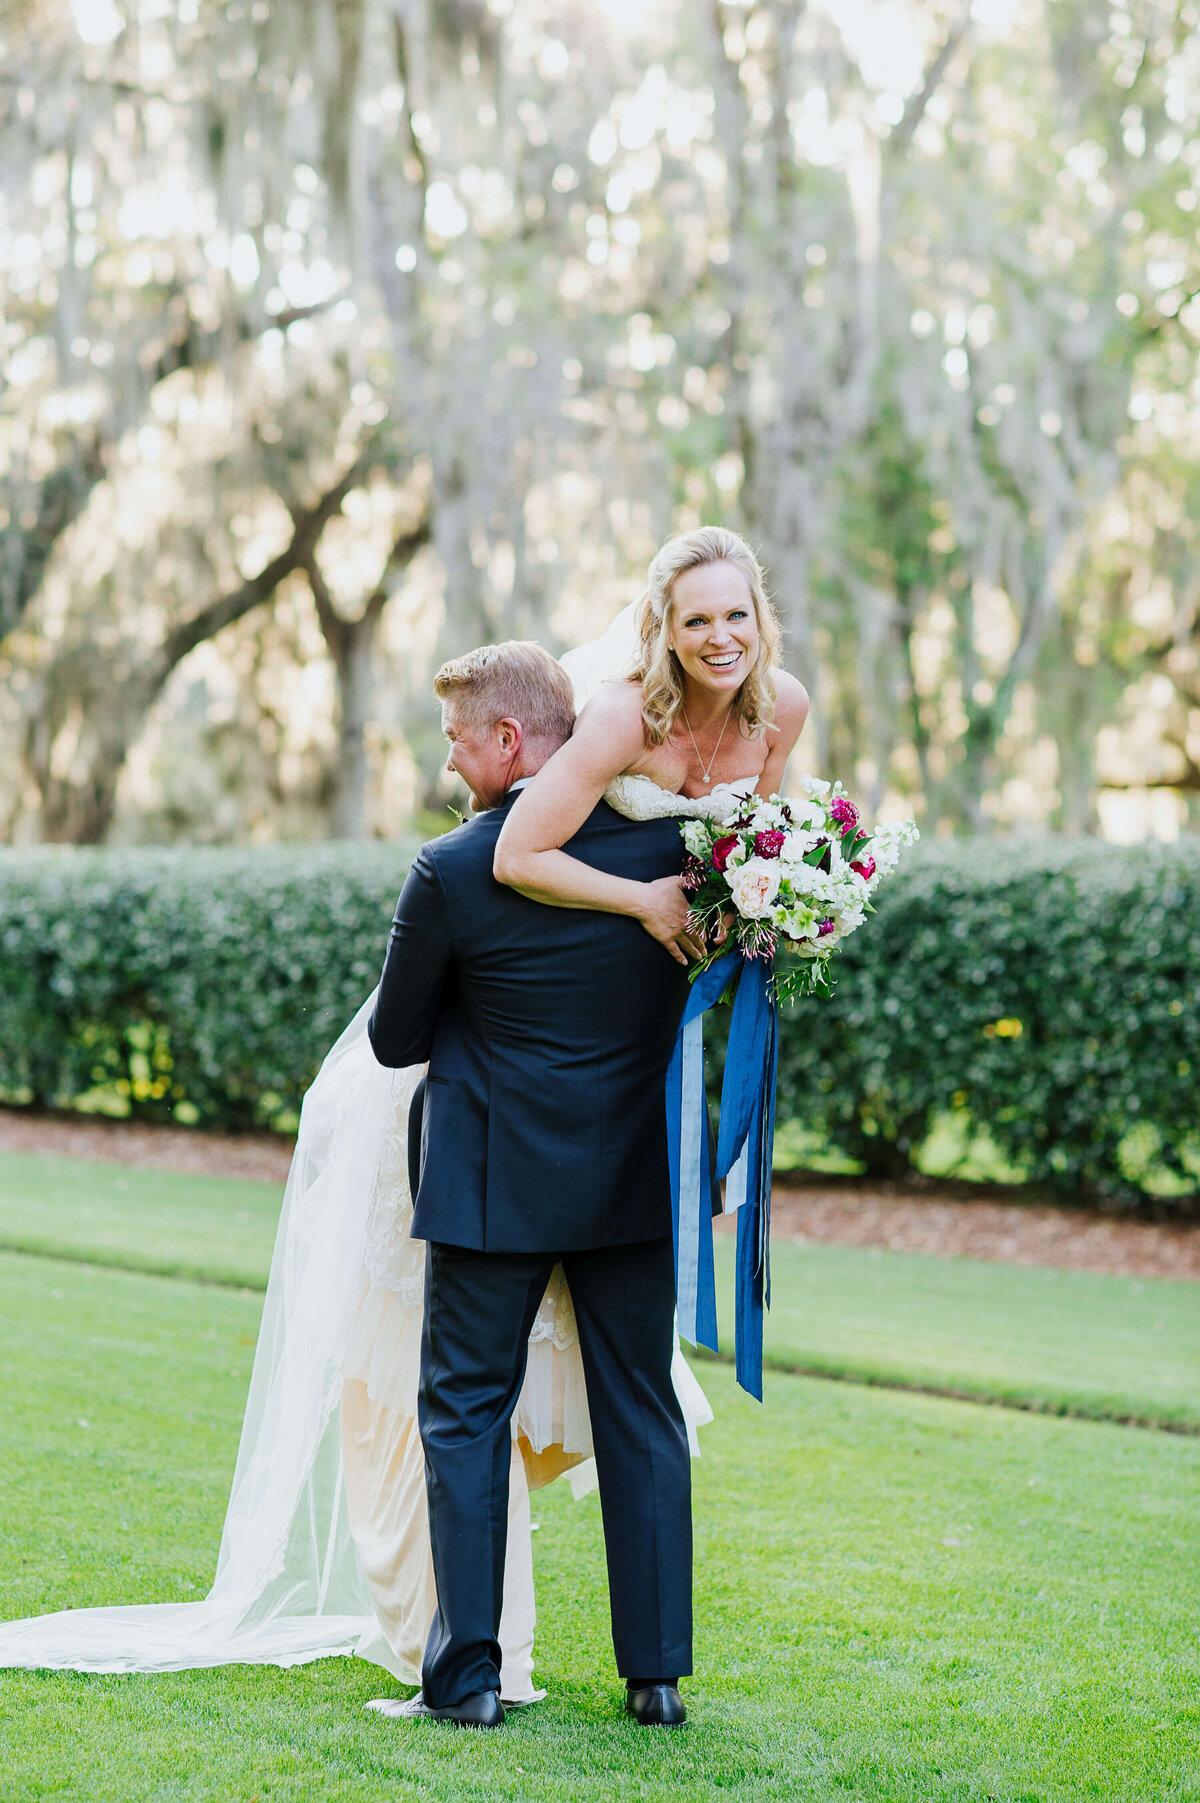 Izzy-and-co-photography-the-ford-plantation-wedding-savannah-wedding-photographer-22